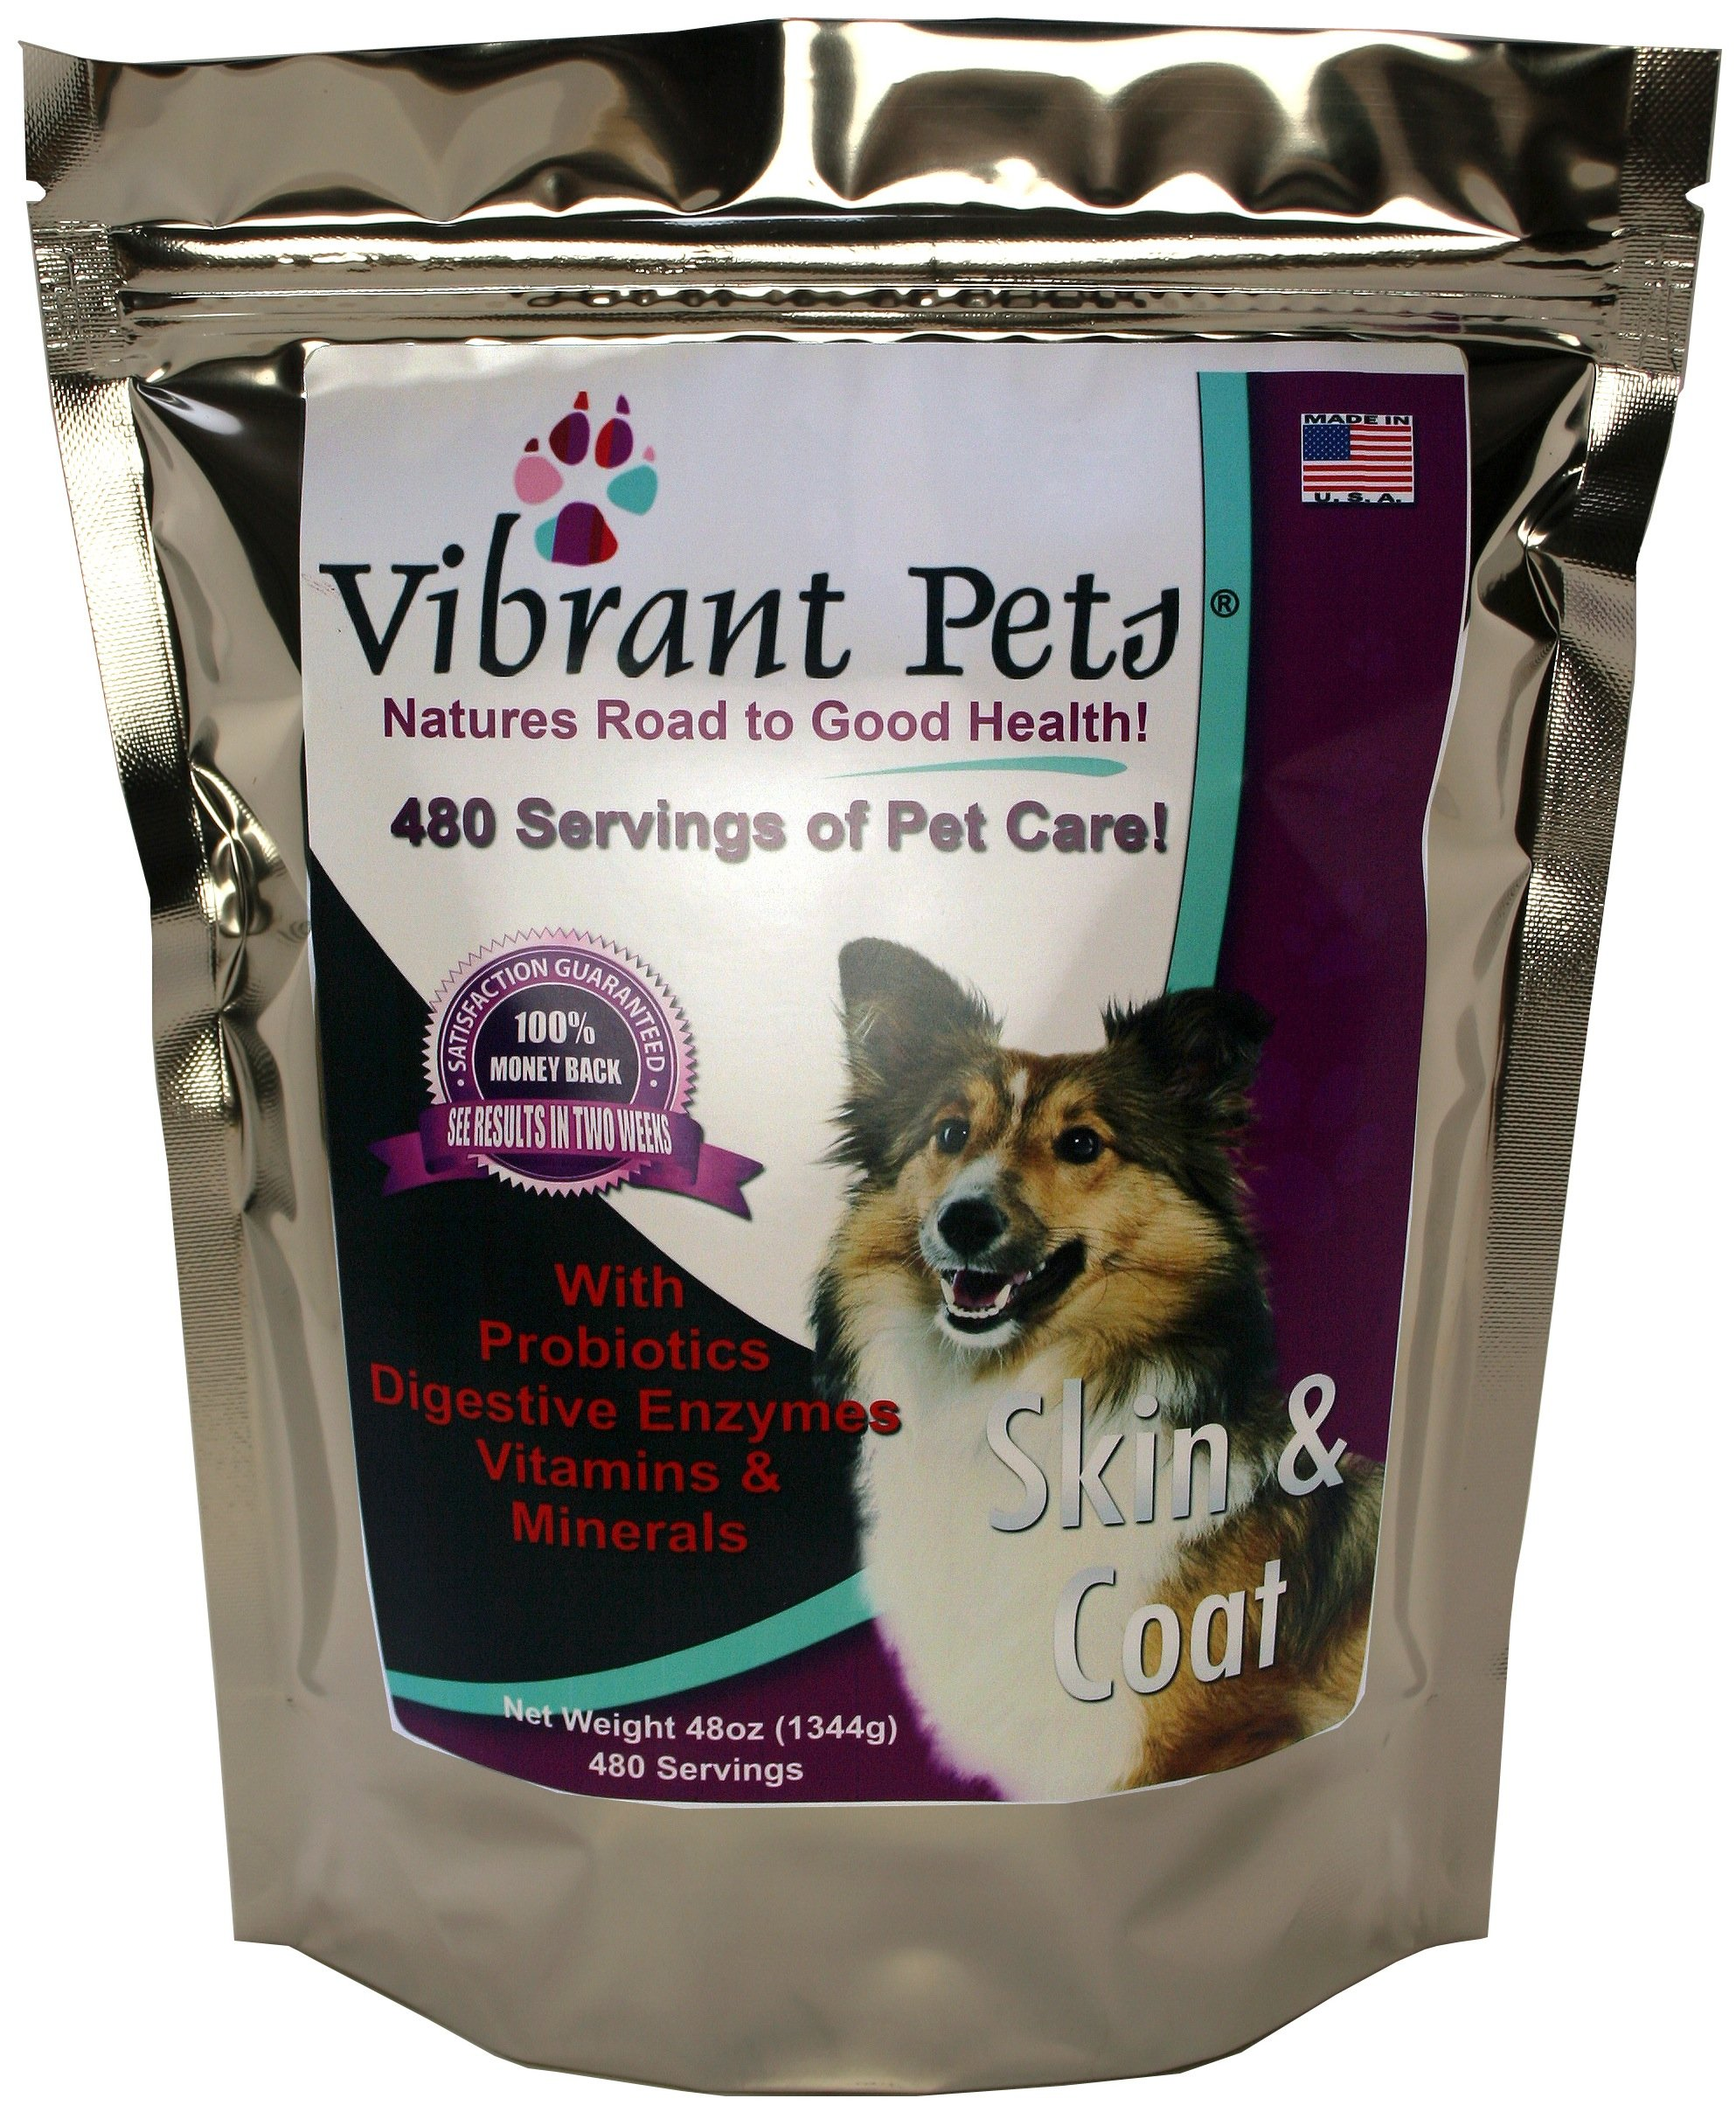 Vibrant Pets Skin and Coat Diet Supplements | Original Premium Dog Coat Supplement and Dog Skin Supplement Powder with Probiotics| Natural Ingredients 480 Servings 48oz by Vibrant Pets